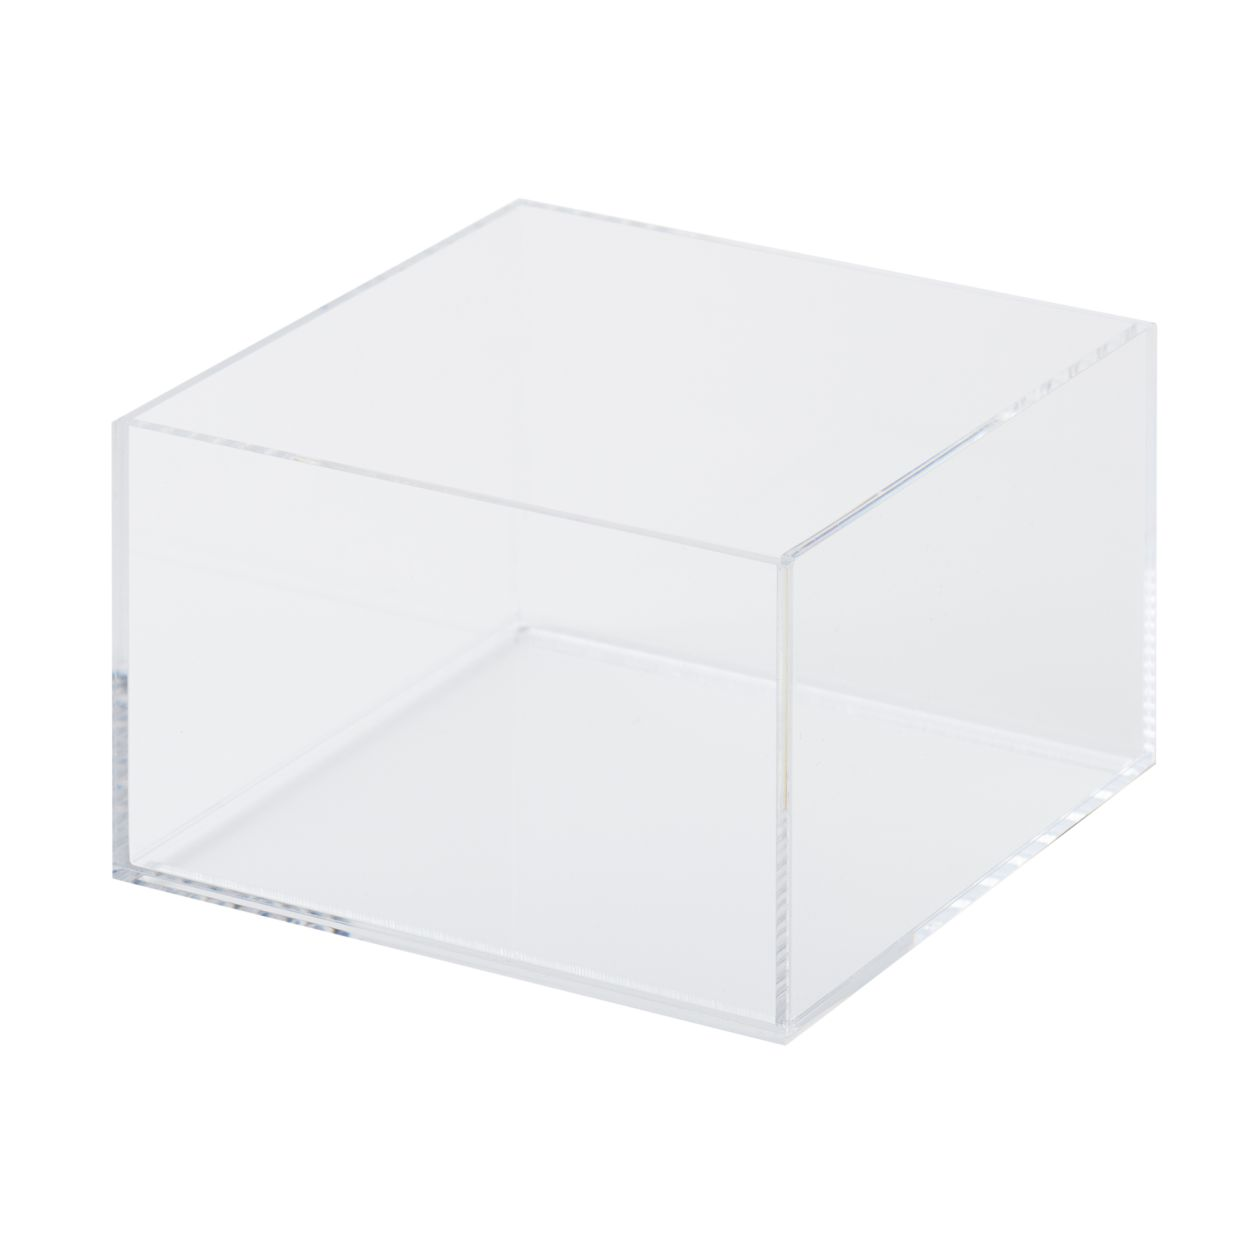 STACKABLE ACRYLIC BOX / M / HALF